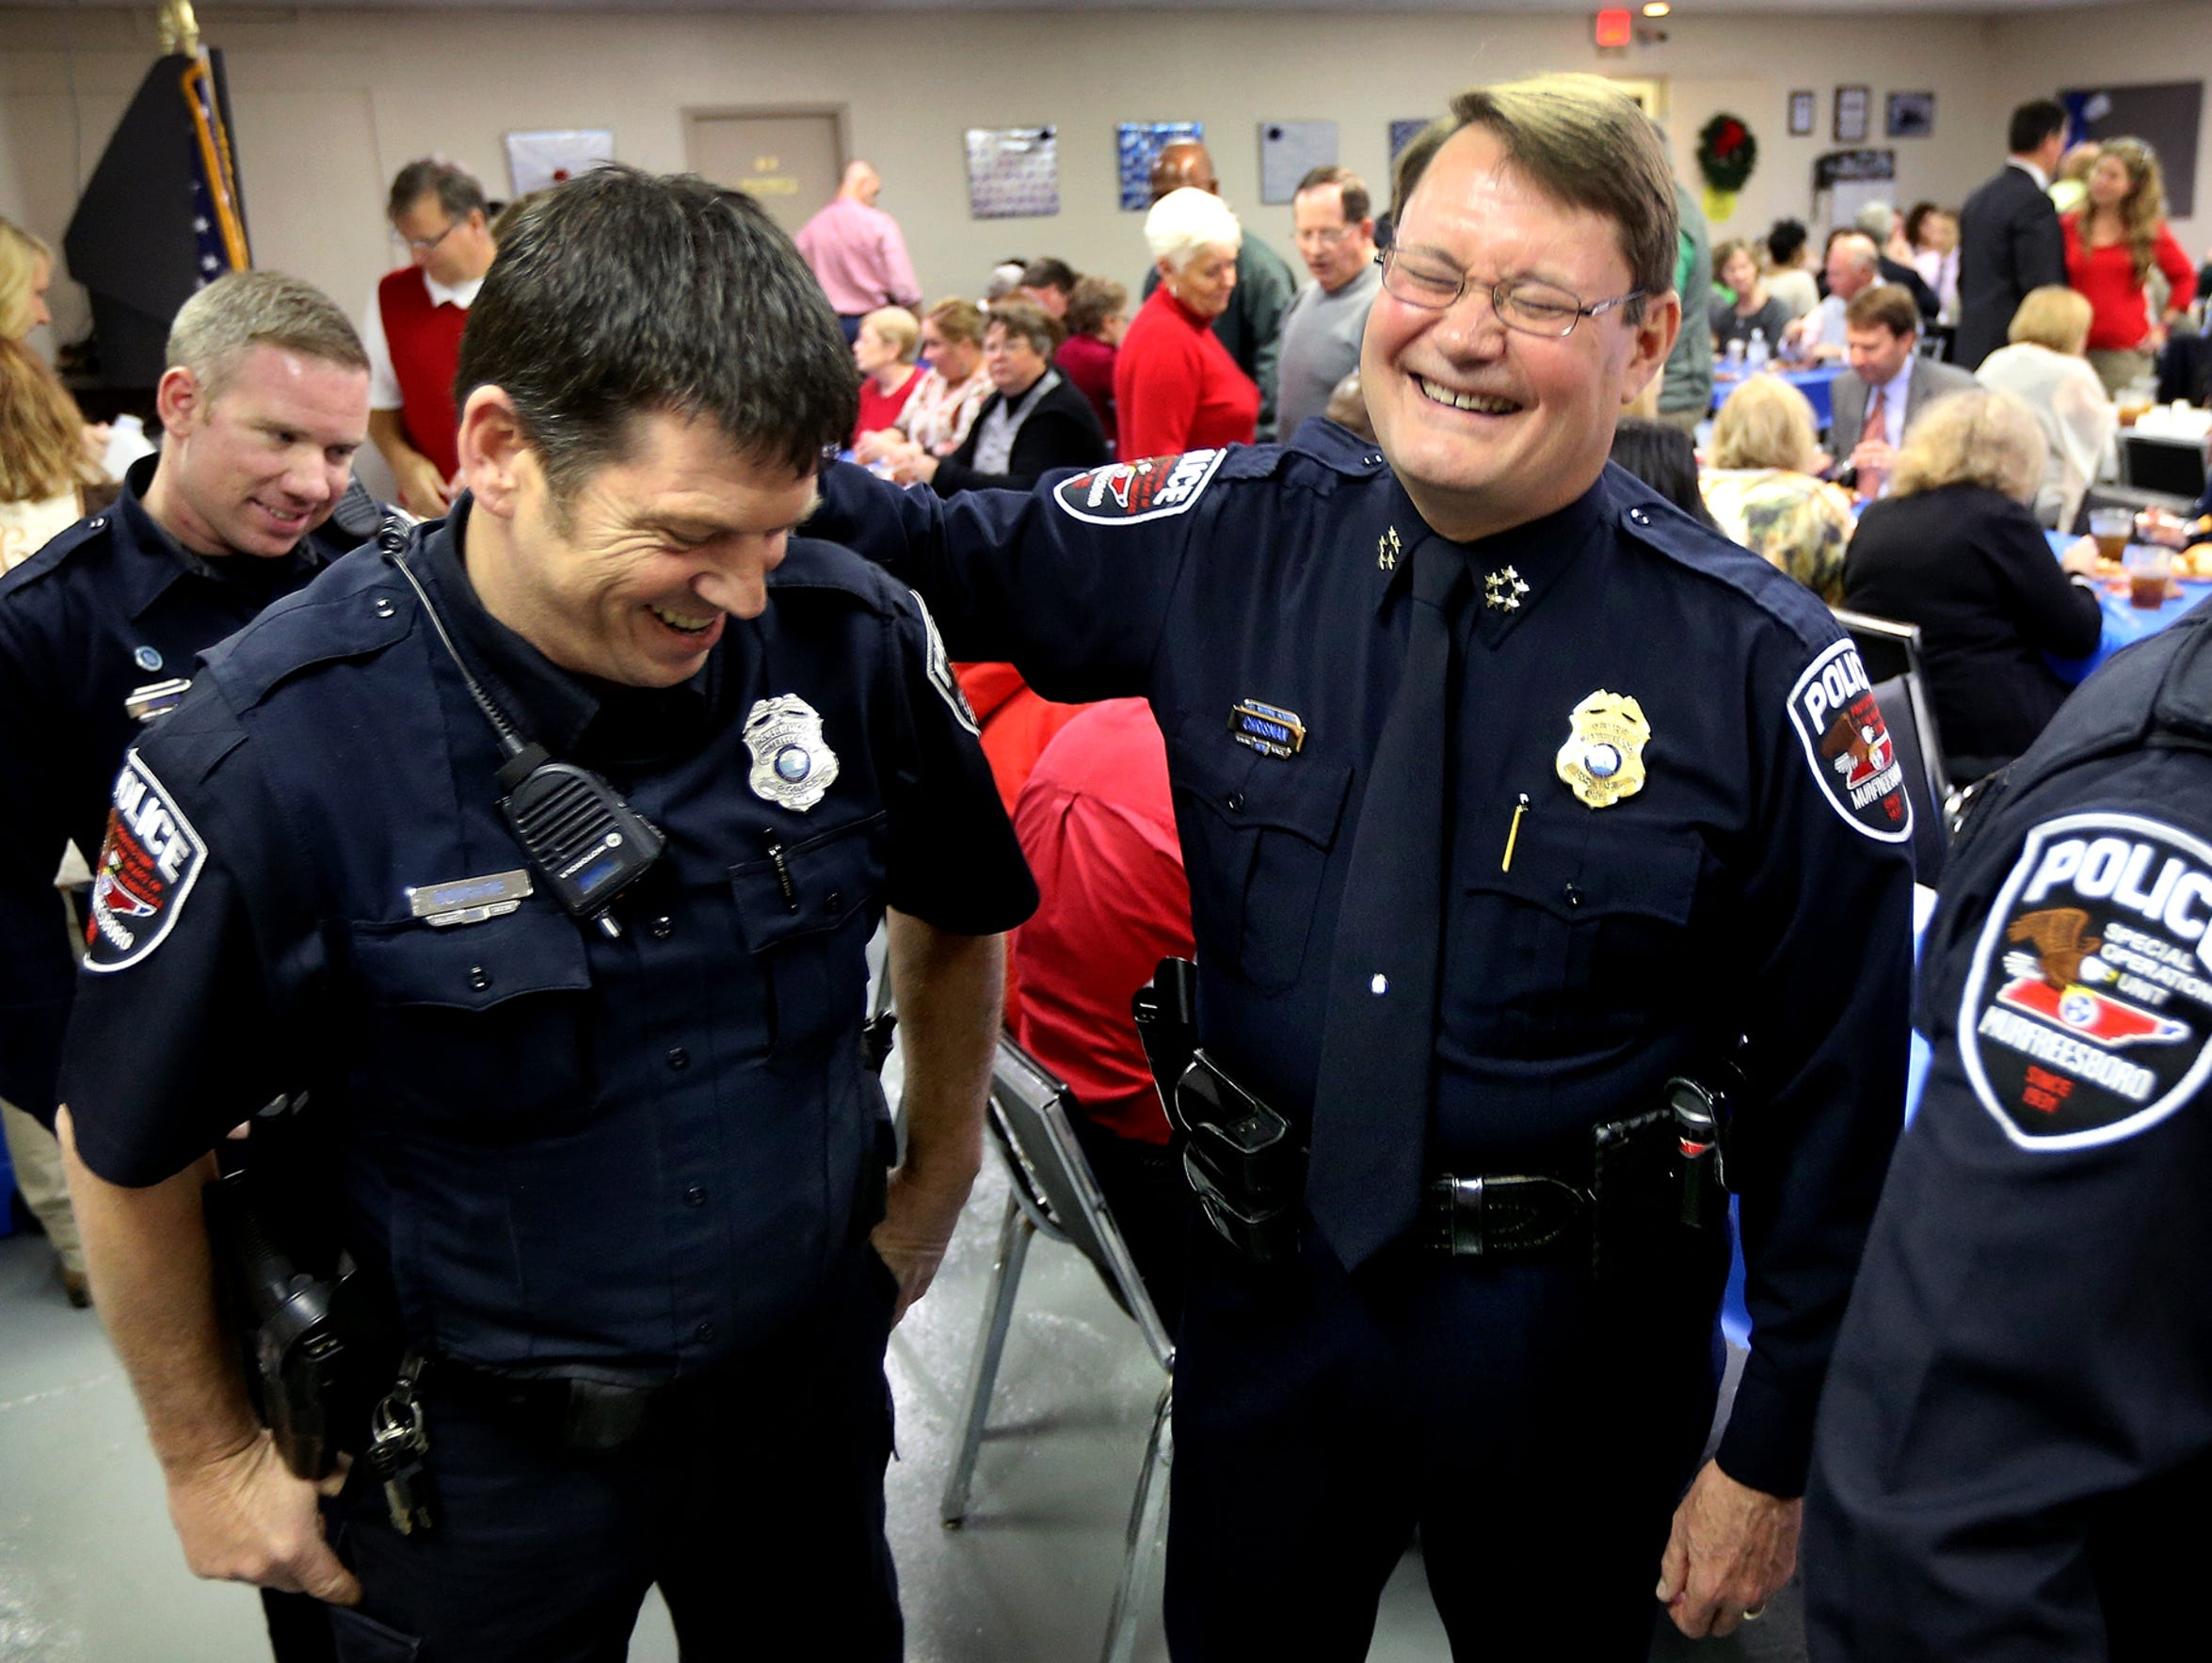 Murfreesboro Police Officer Patrick Doughtie, left,